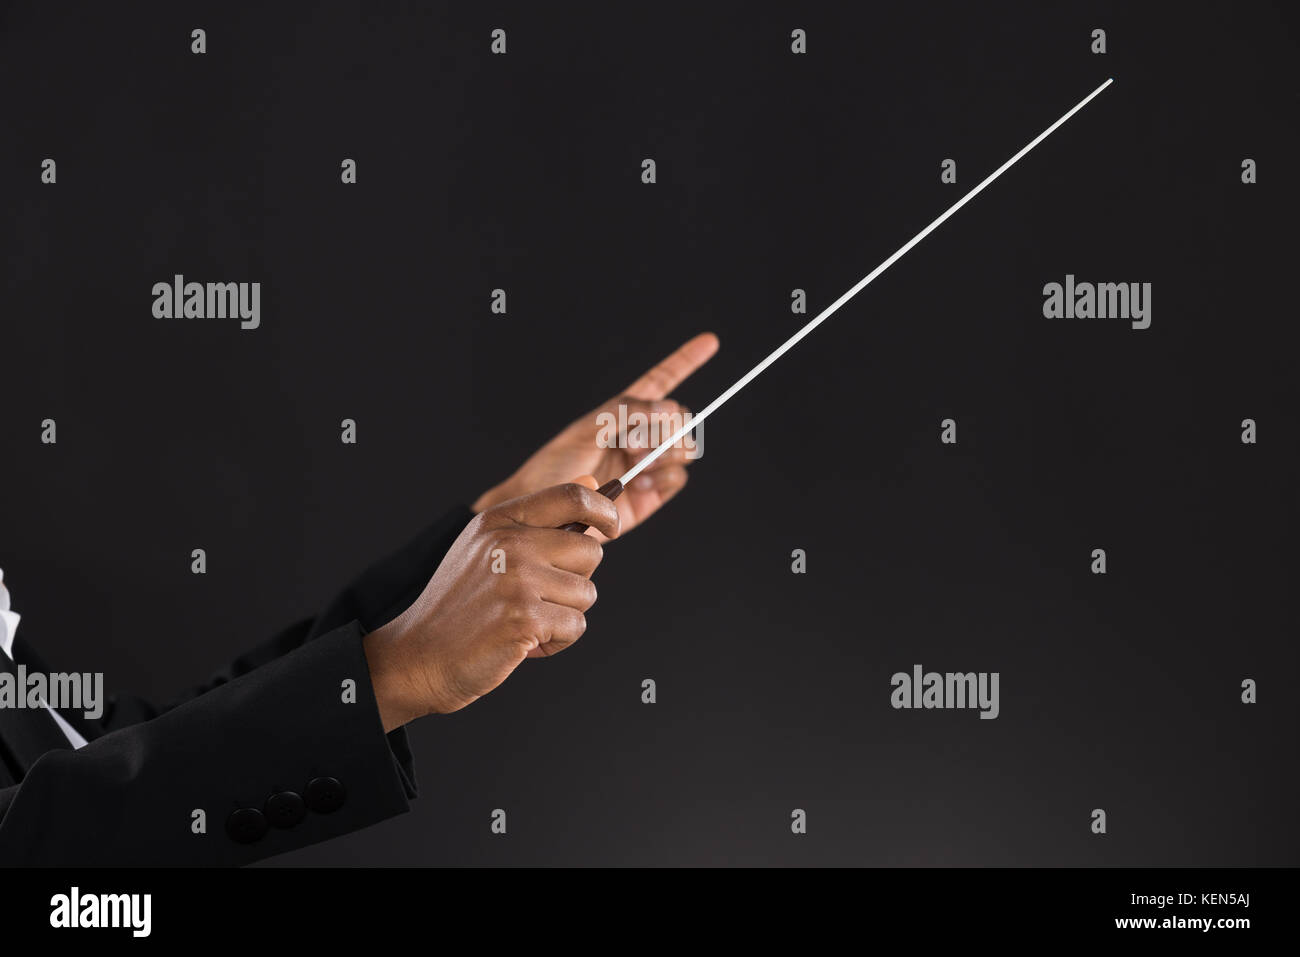 Close-up Of Female Orchestra Conductor Holding Baton Over Black Background - Stock Image